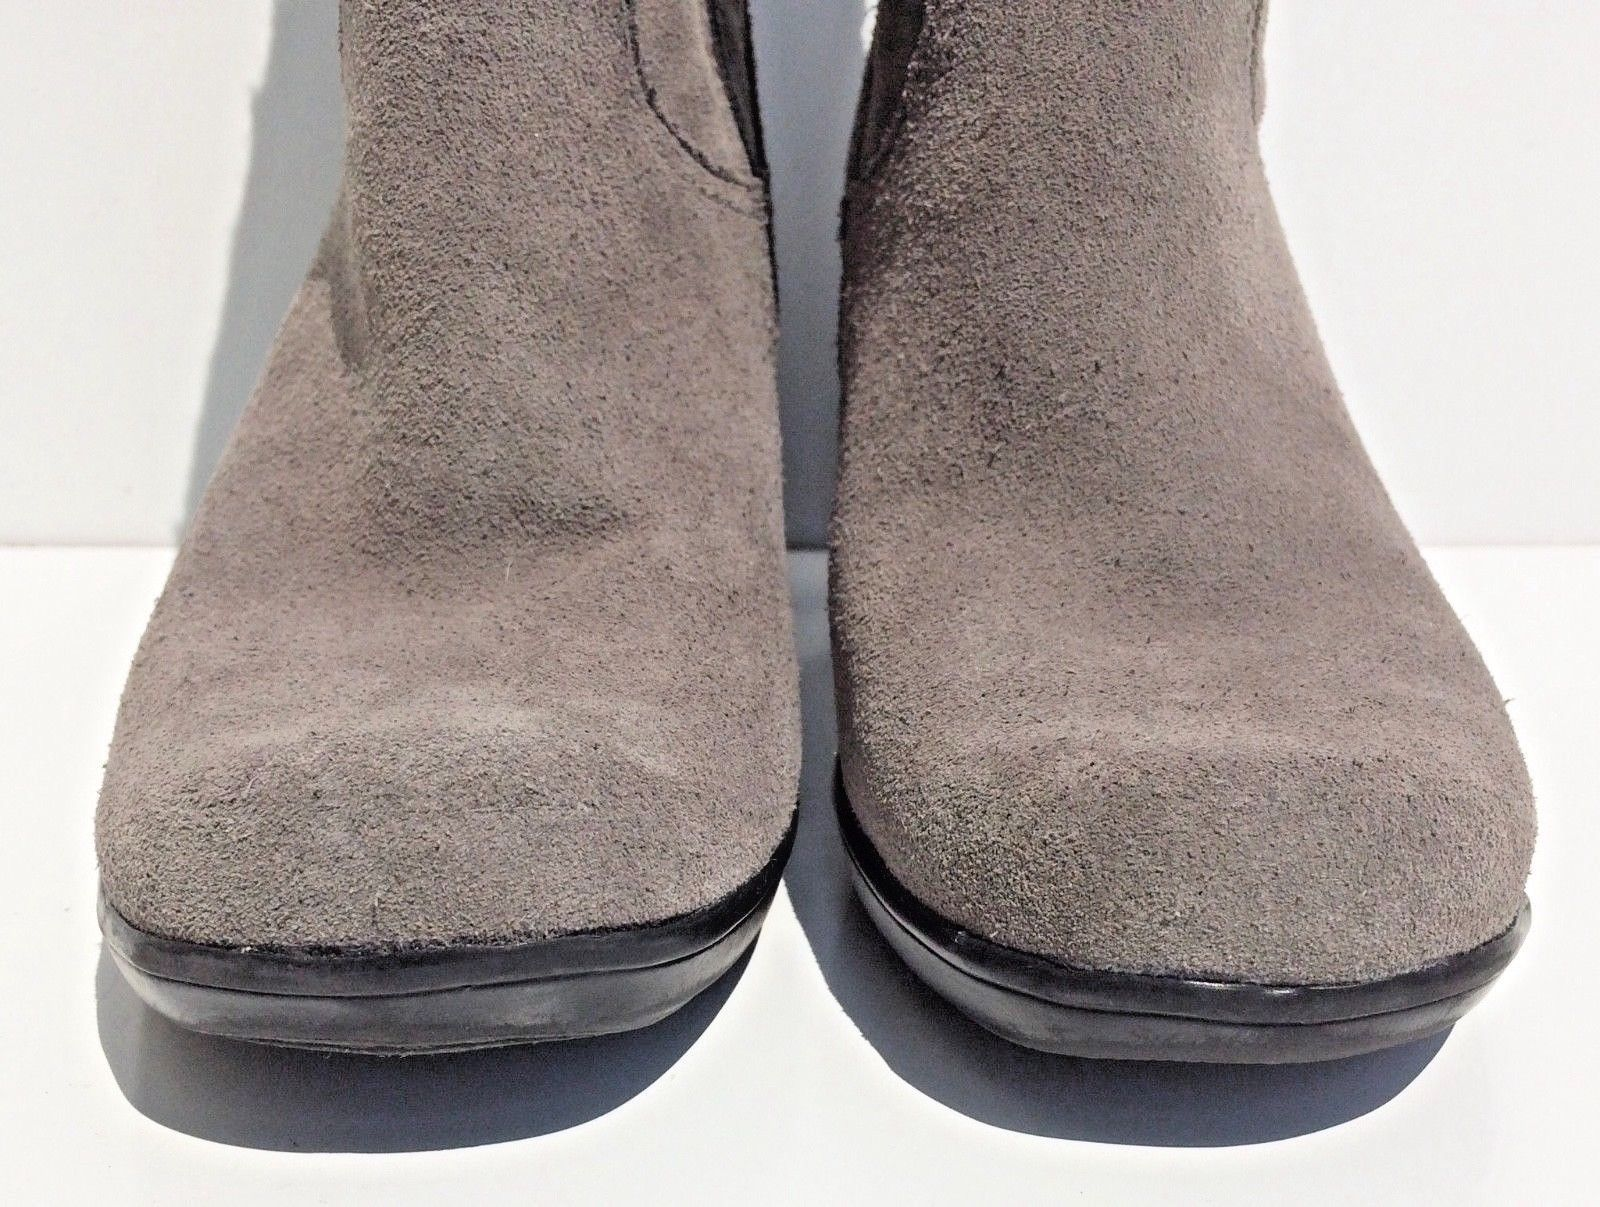 Clarks Bendables boots women size 6M gray suede leather faux fur mid calf 39387